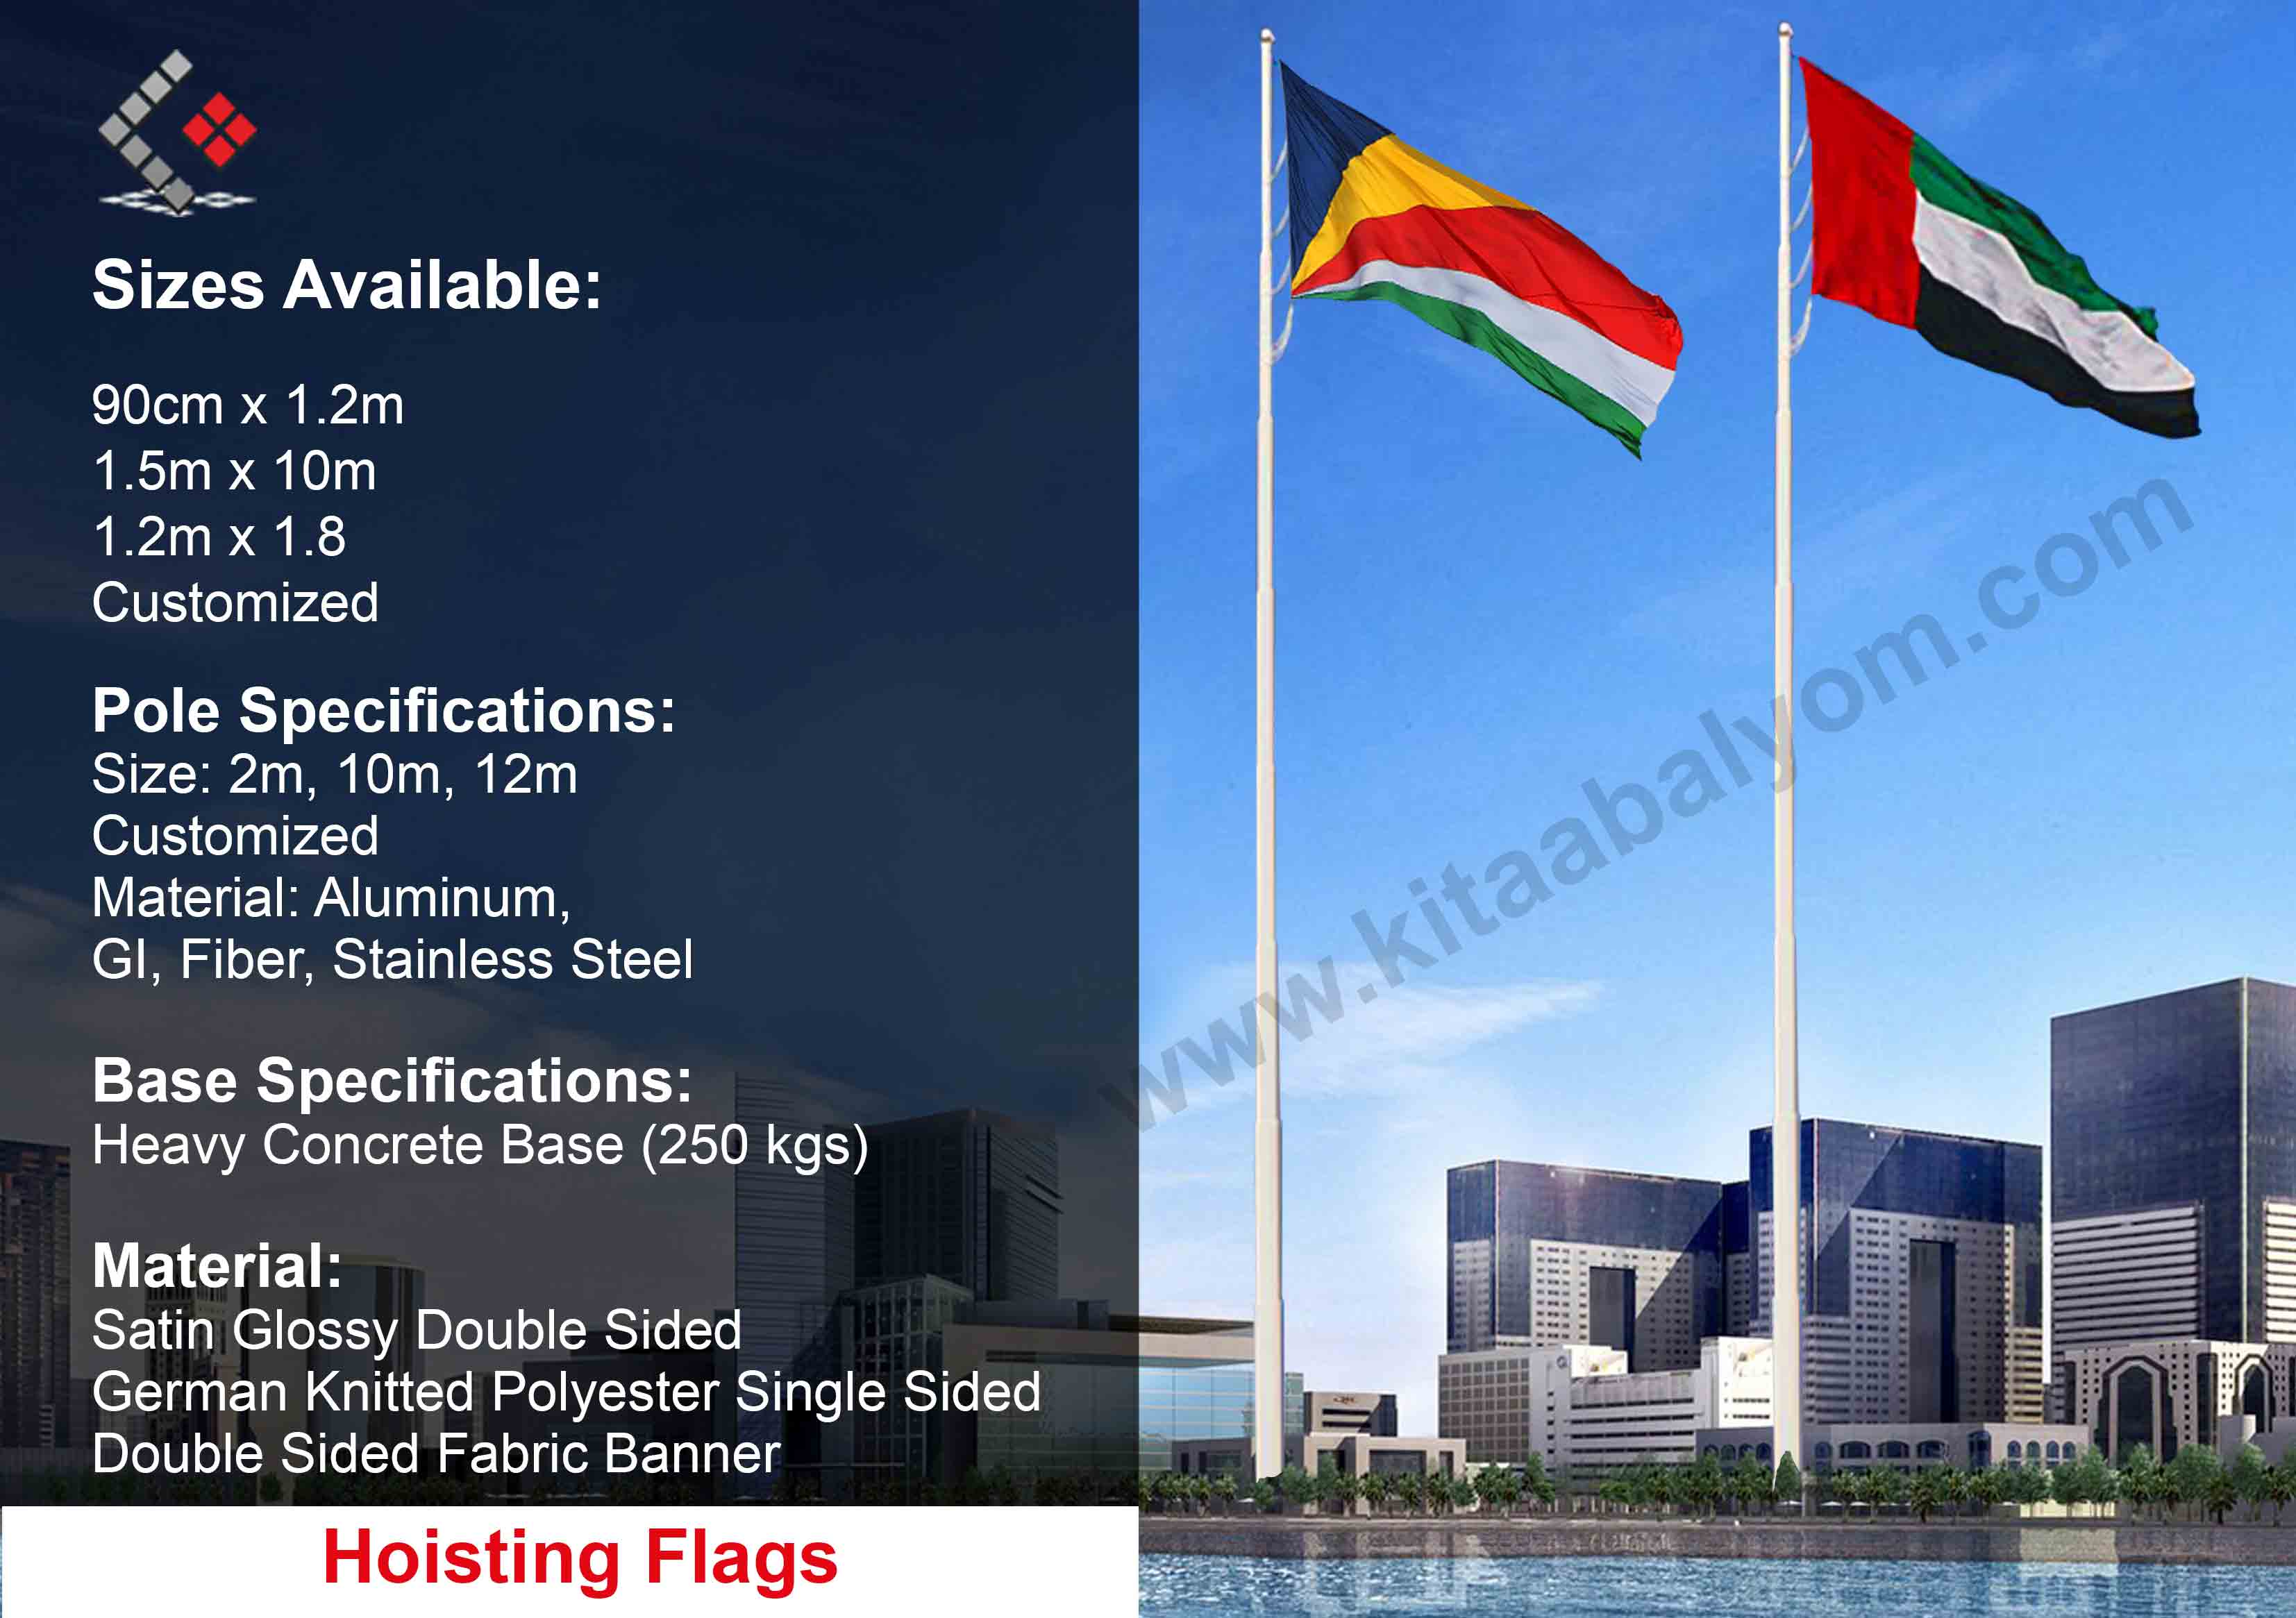 Housting Flag Printing In Dubai, National Flags, Flags Dubai & Abu Dhabi